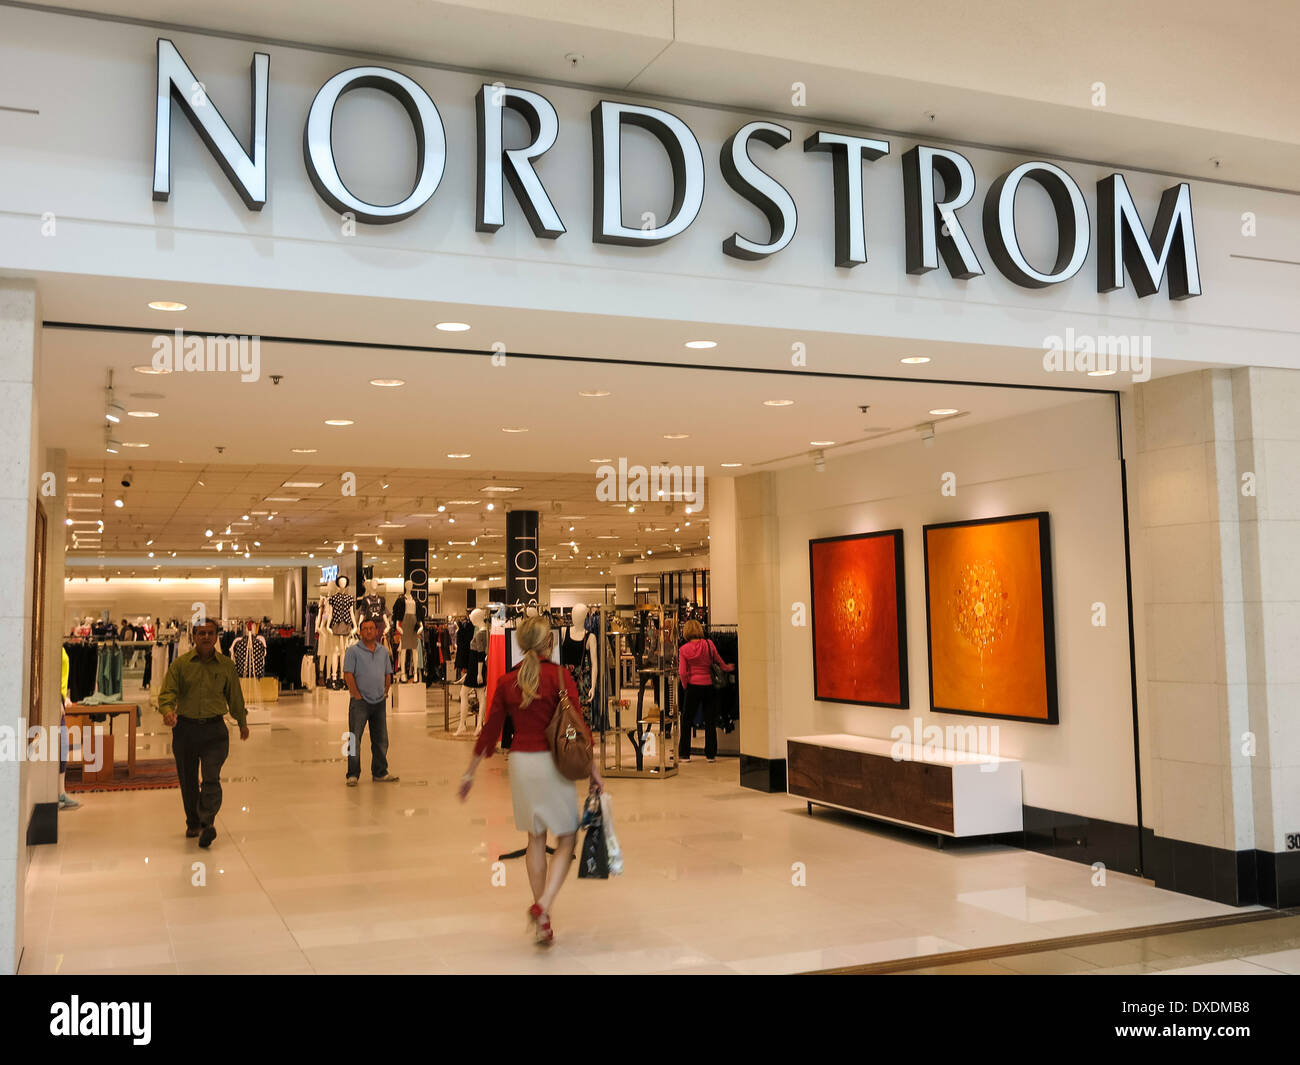 Nordstrom is a very popular site to shop online as they offer great prices and good variety for brand products. However, Nordstrom does not have direct international shipping for their overseas shoppers.